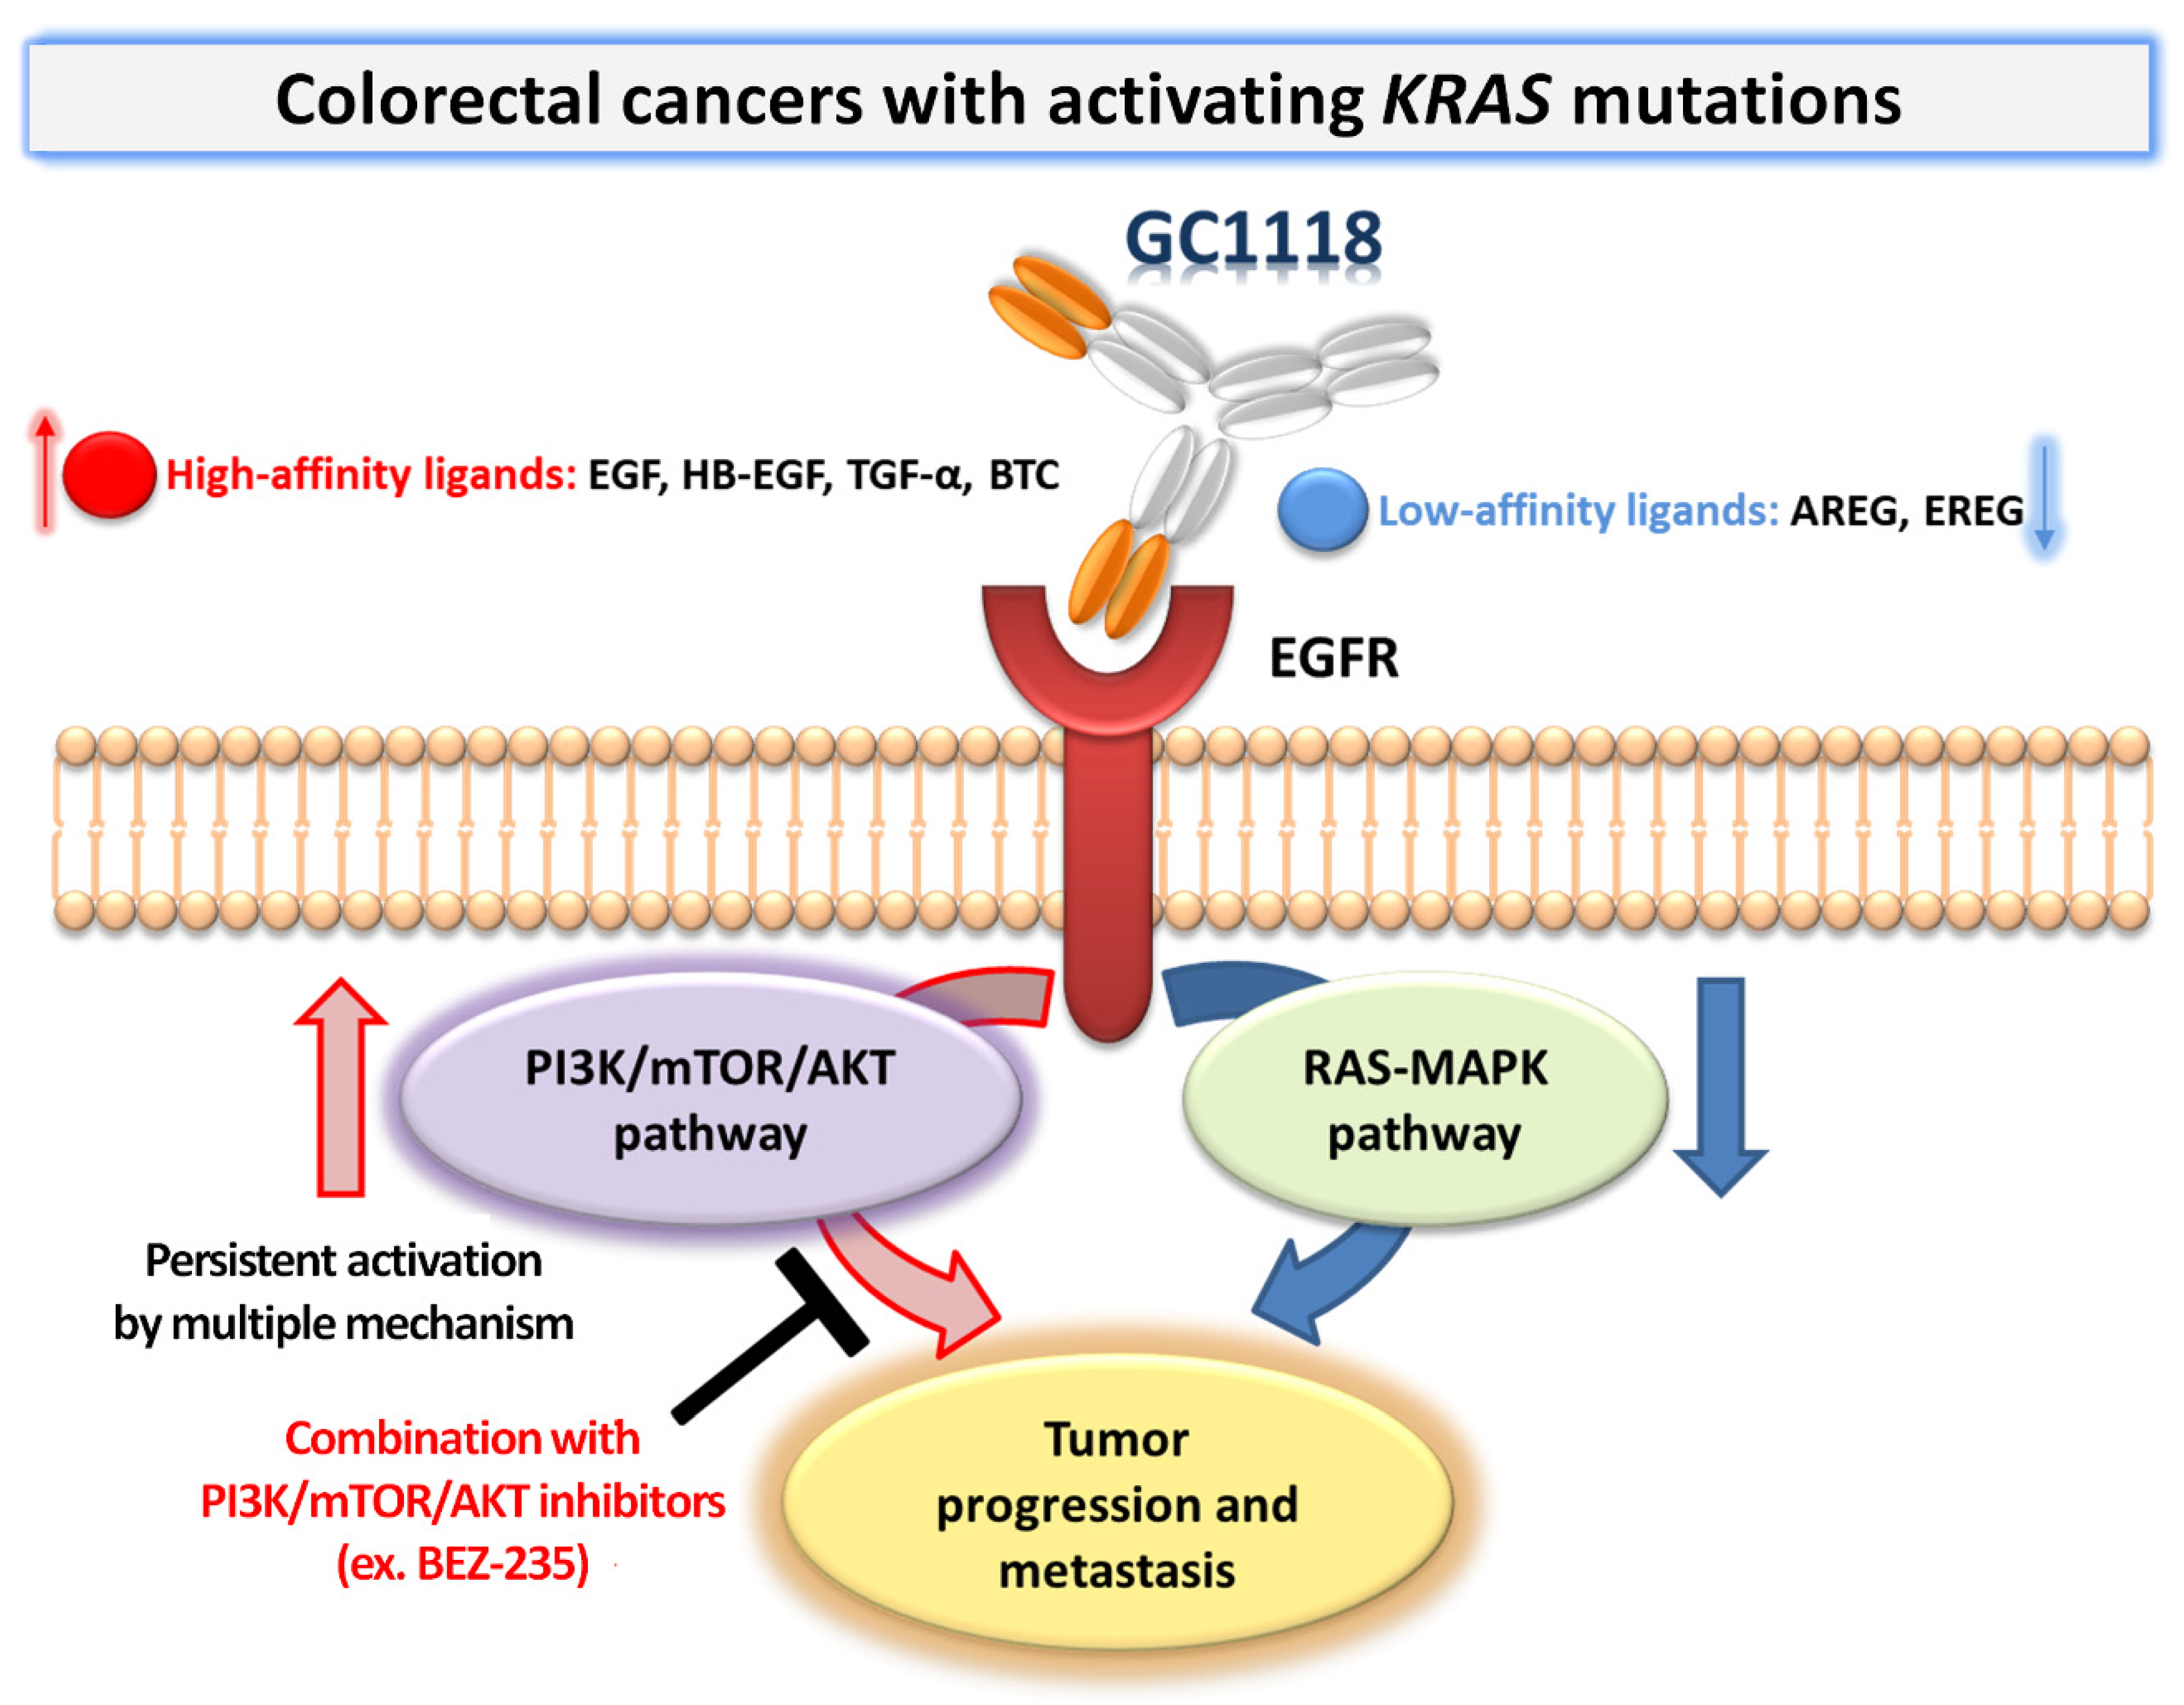 Ijms Free Full Text Promising Therapeutic Efficacy Of Gc1118 An Anti Egfr Antibody Against Kras Mutation Driven Colorectal Cancer Patient Derived Xenografts Html